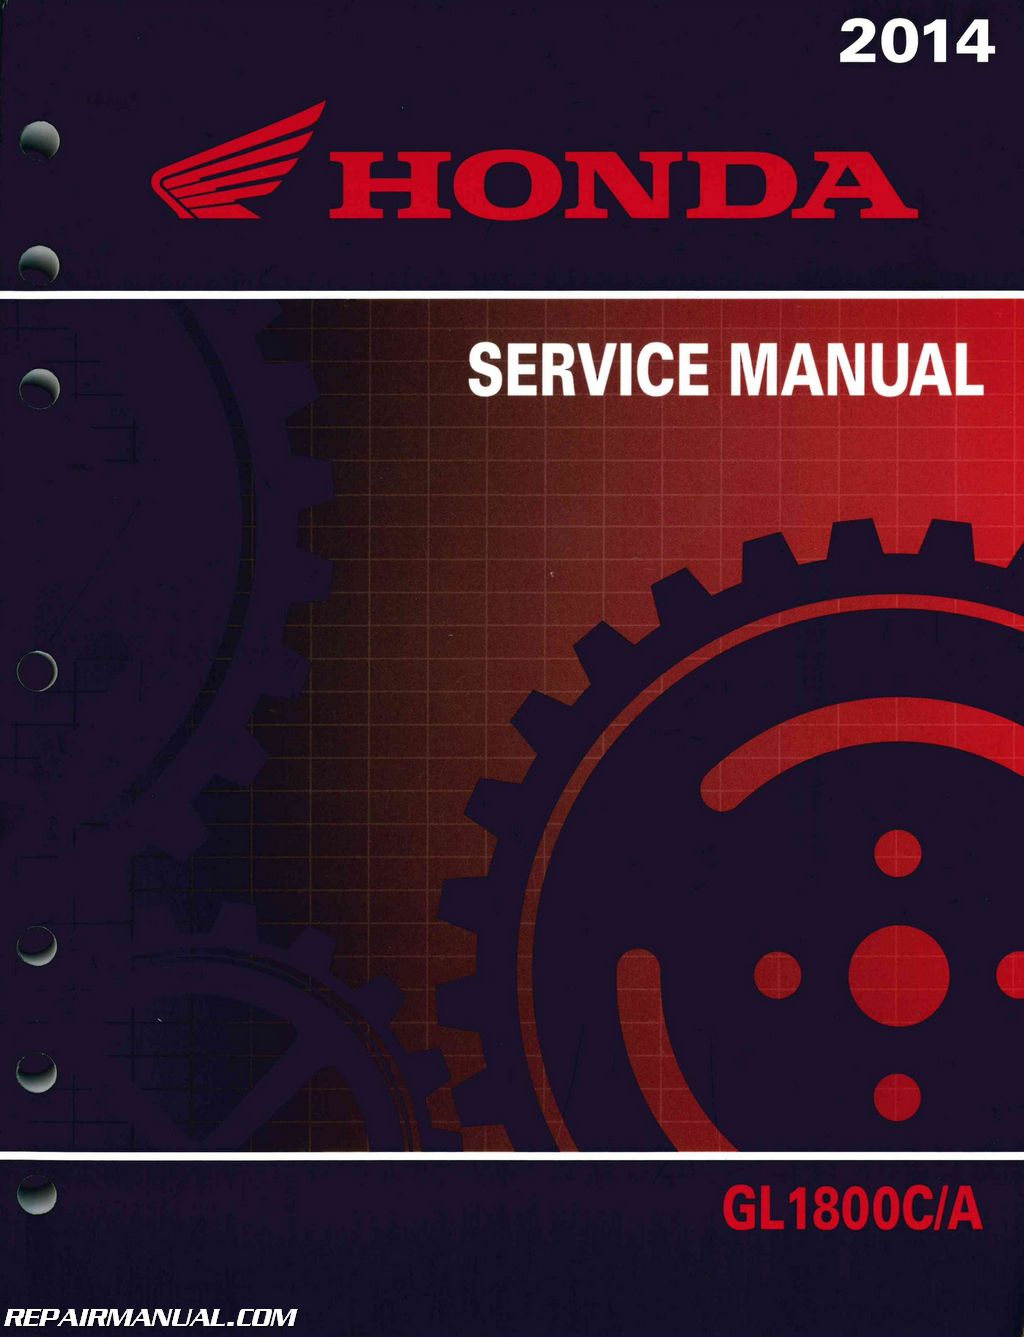 2014 2015 honda gl1800 c a valkyrie motorcycle service manual rh repairmanual com honda valkyrie owners manual pdf honda valkyrie 1500 manual